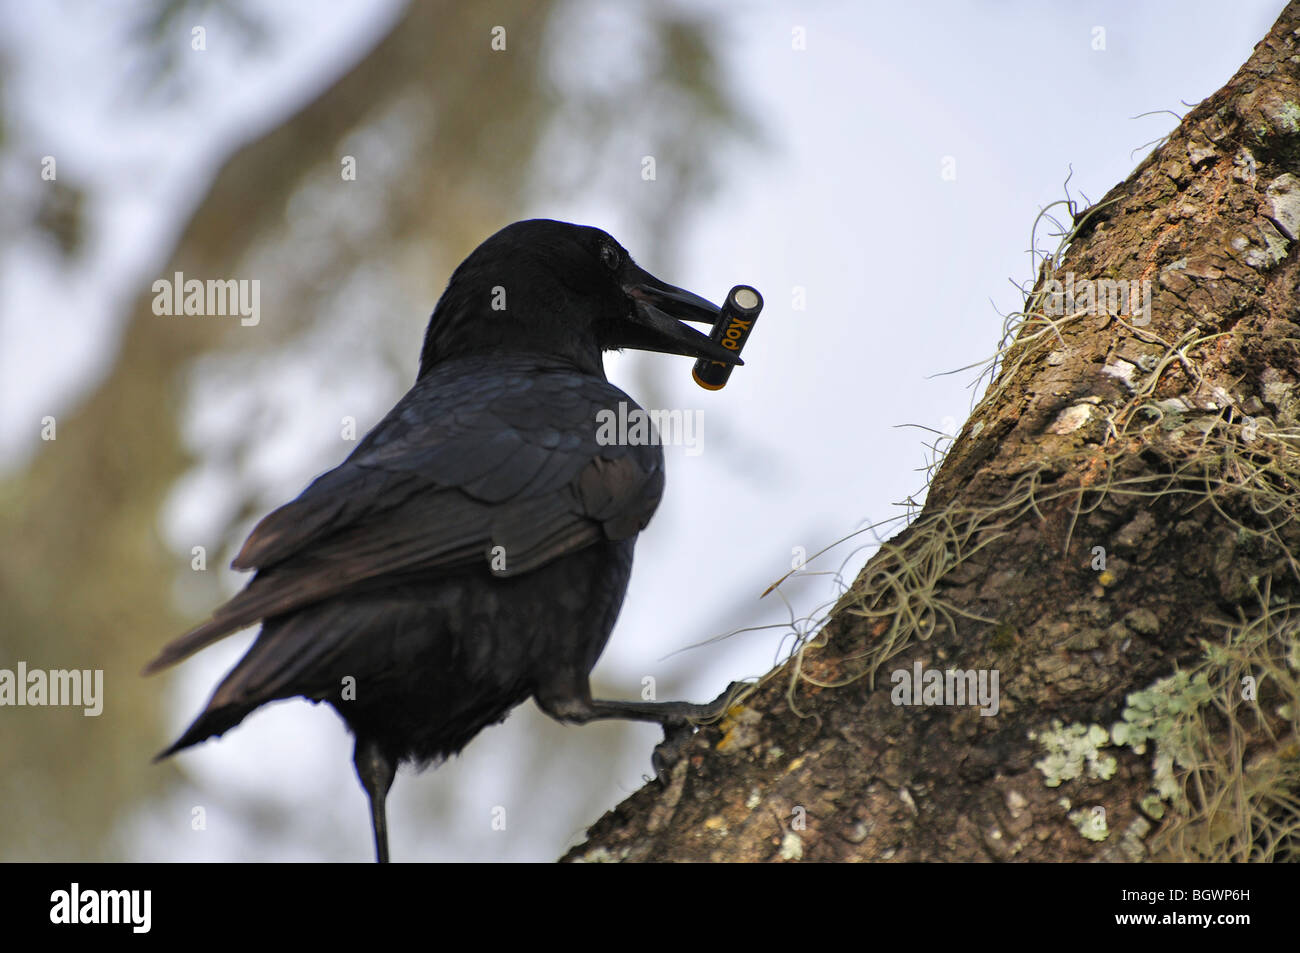 Funny Crow Holding Battery Stock Photo 27611097 Alamy